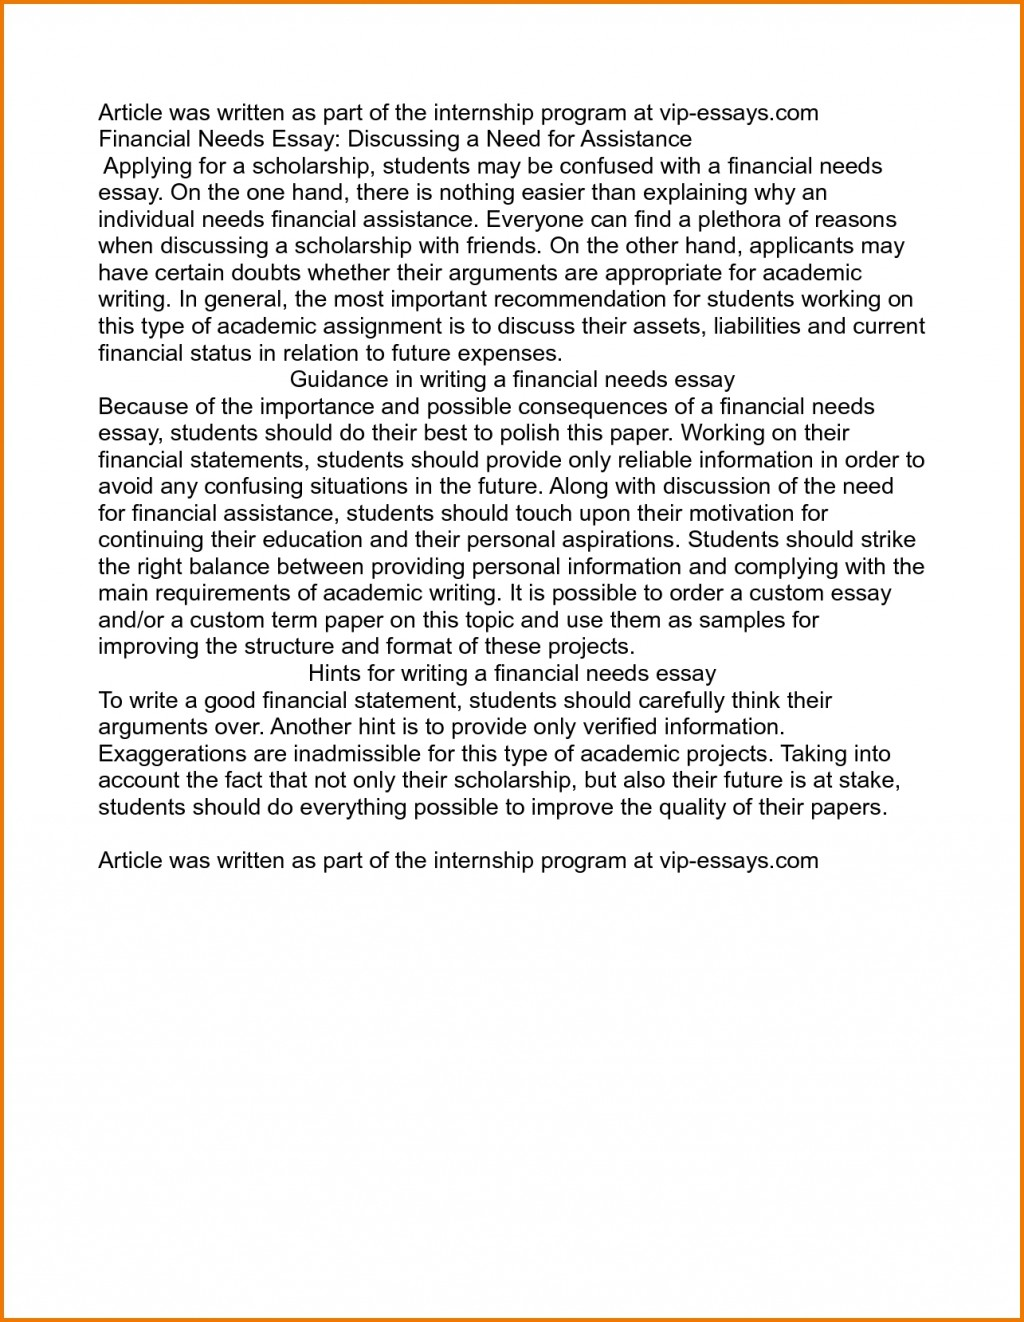 011 Examples Of Scholarship Essays On Financial Need Essay Writings And Pdf Inten Best Large